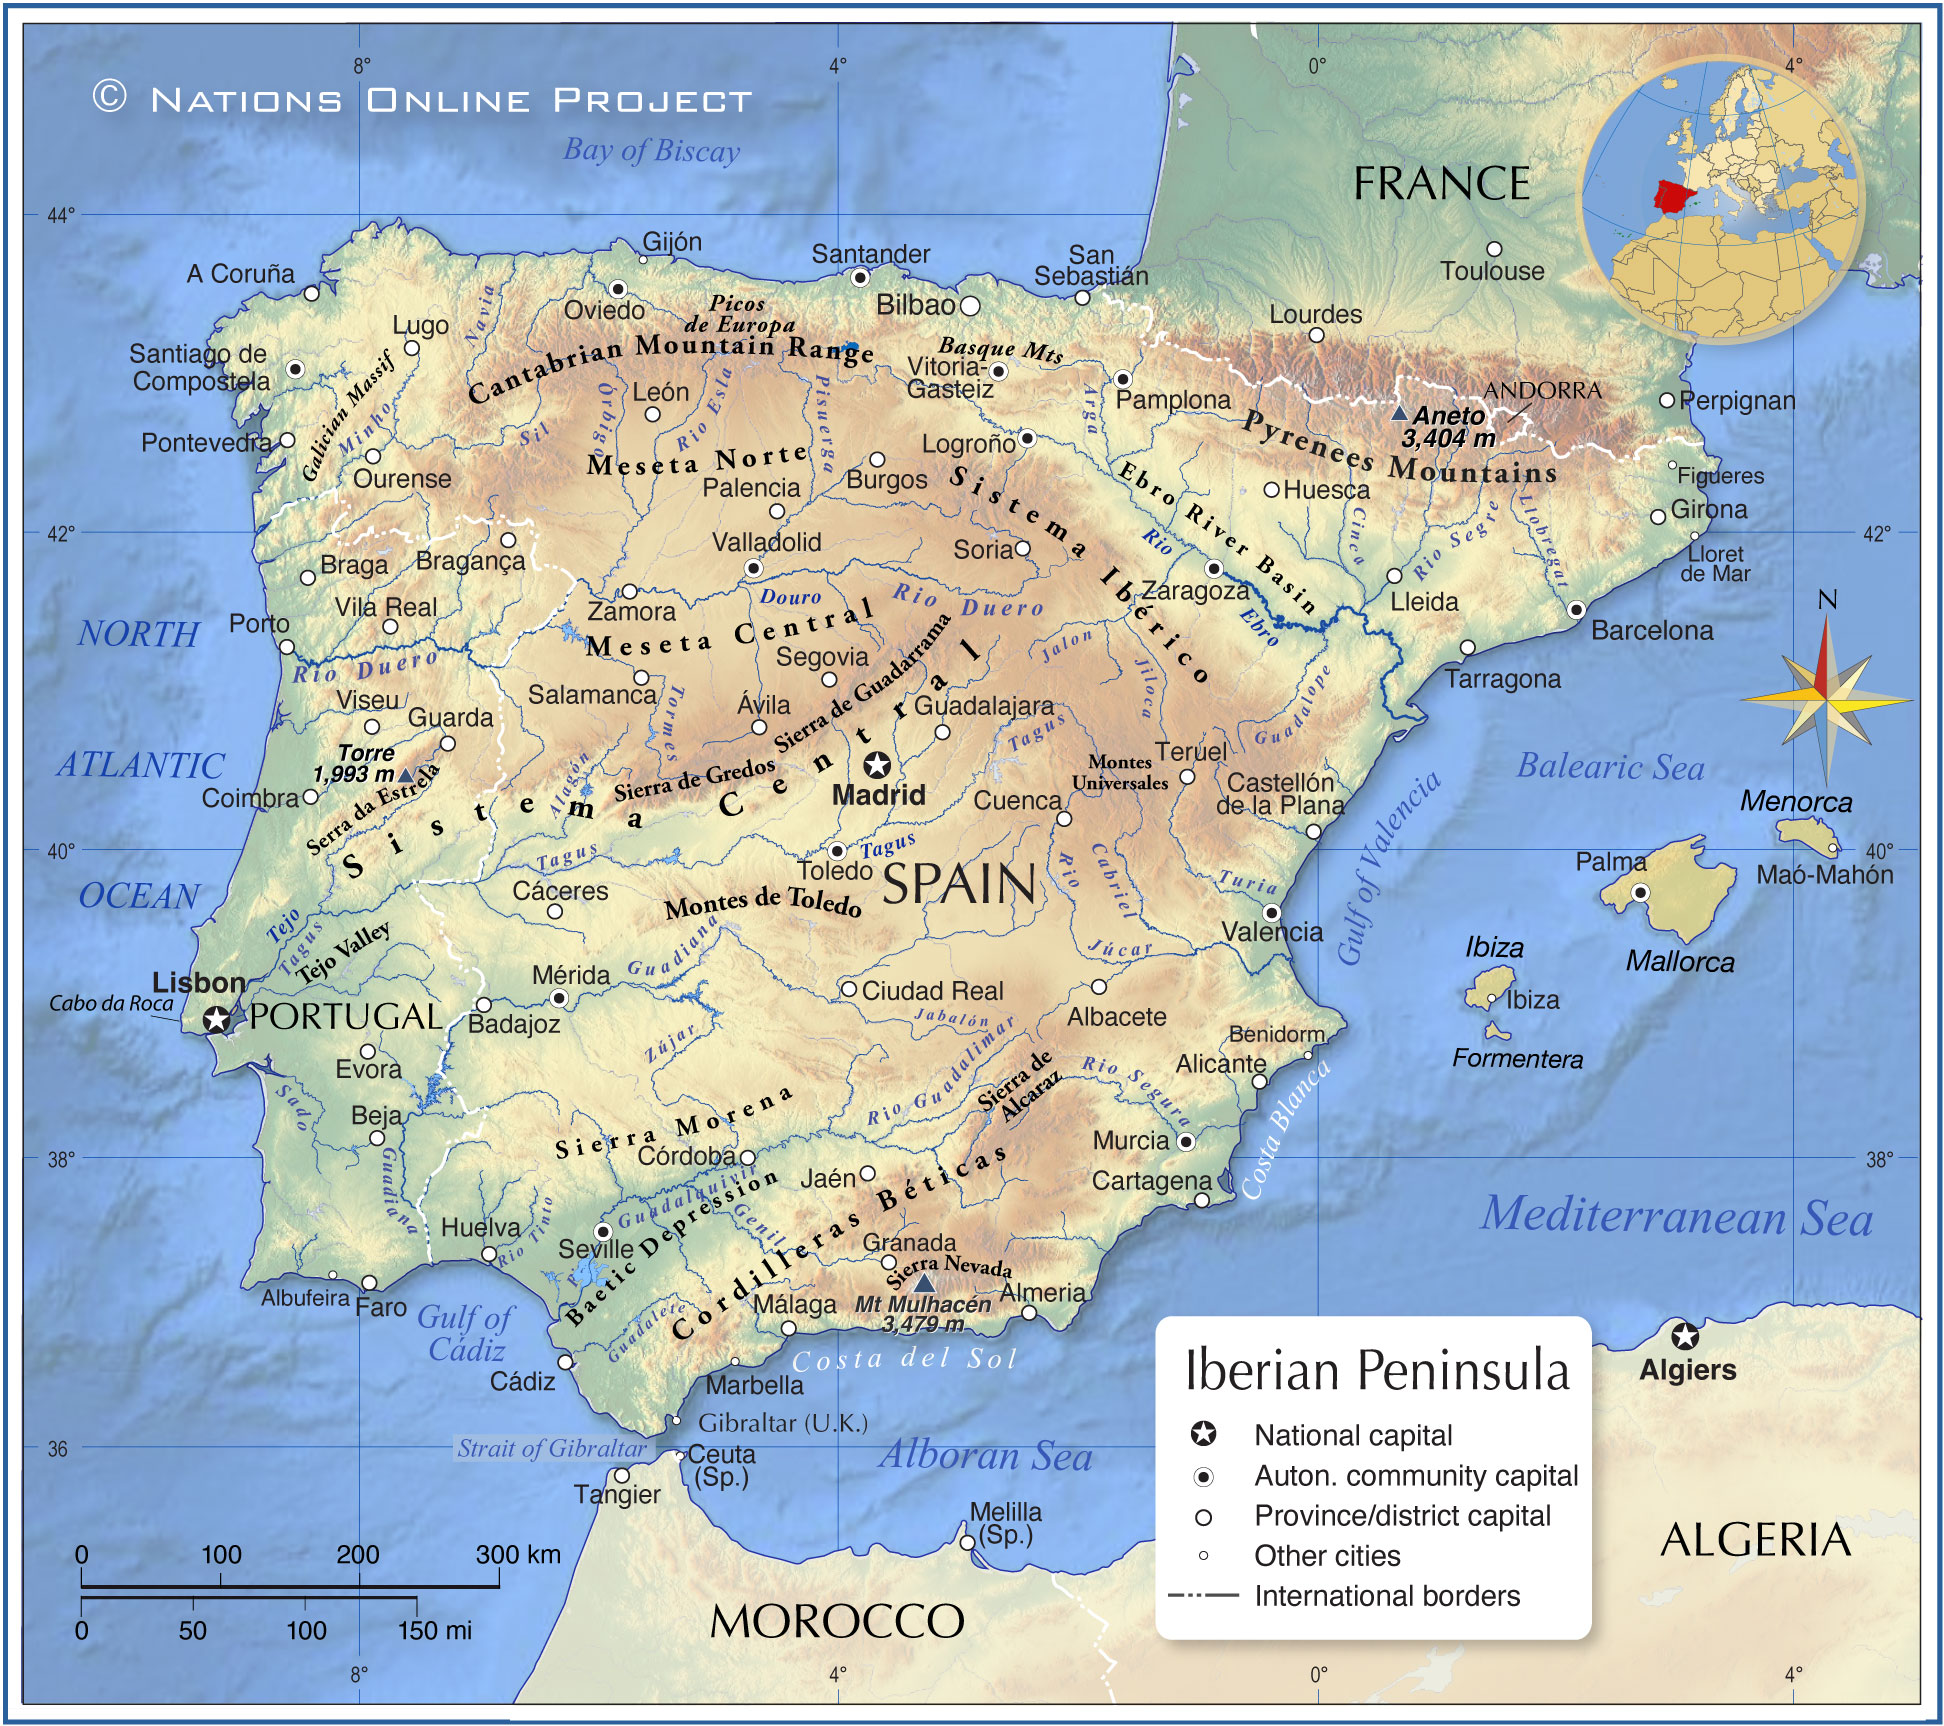 iberian peninsula on map of europe Topographic Map of the Iberian Peninsula   Nations Online Project